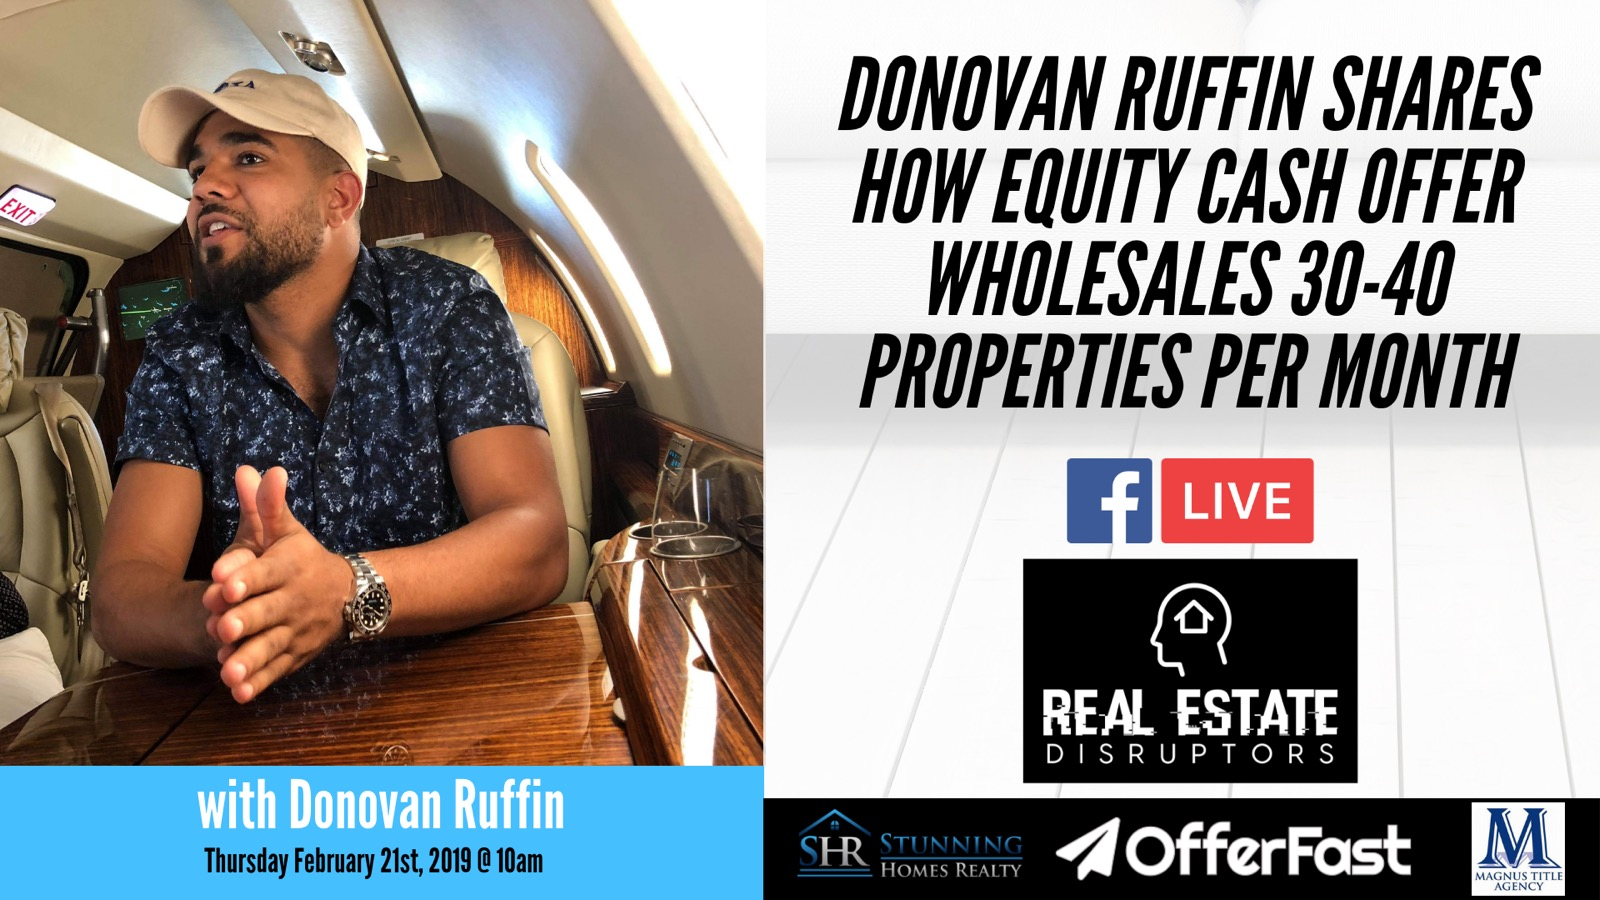 Donovan Ruffin Shares How Equity Cash Offers Wholesales 30-40 Properties per Month